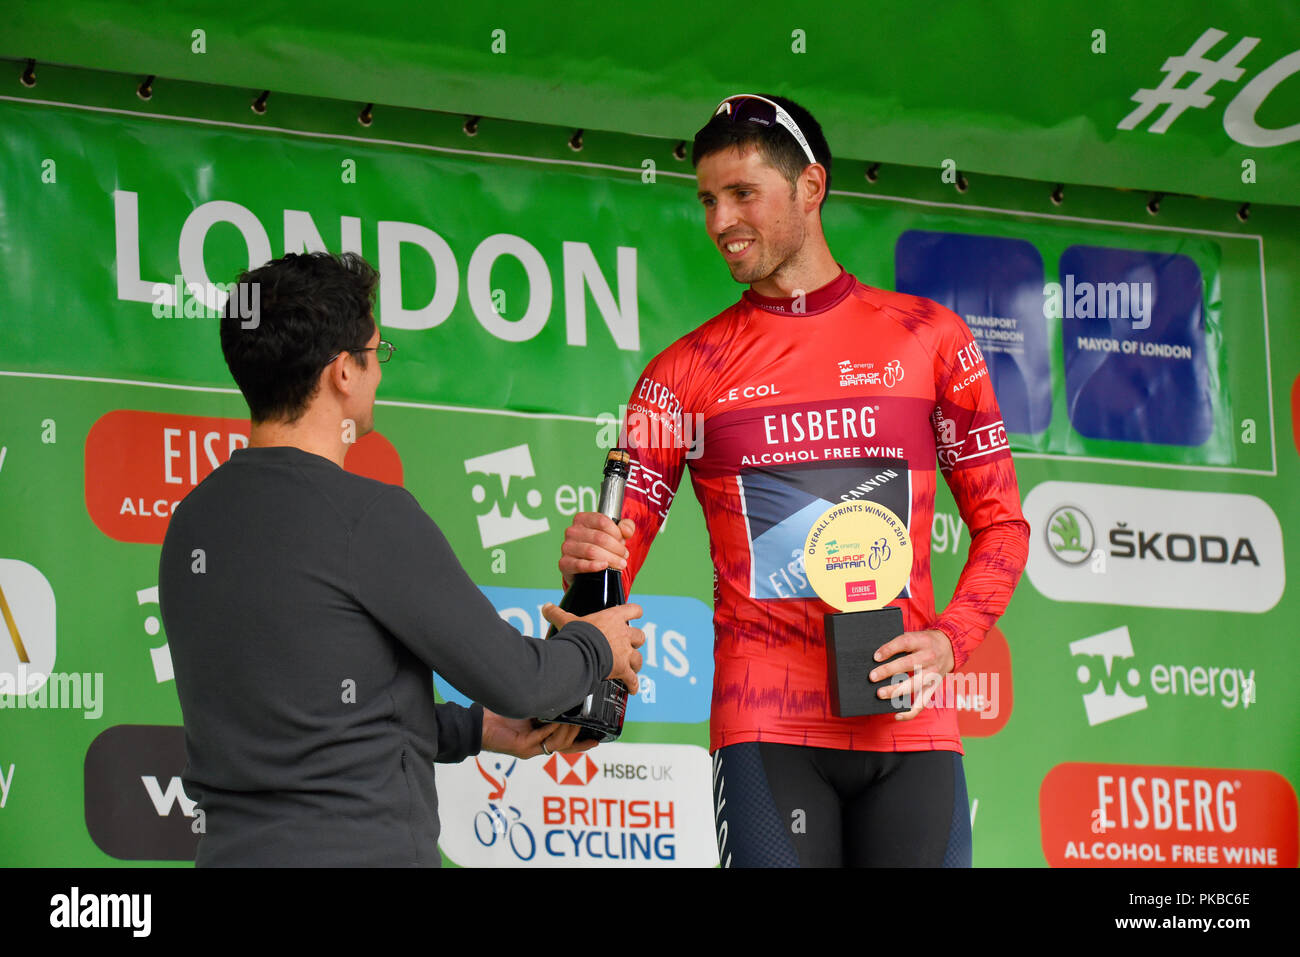 Alex Paton Sprints jersey winner of Canyon Eisberg at the OVO Energy Tour of Britain cycle race, Stage 8, London, UK. Winning trophy - Stock Image